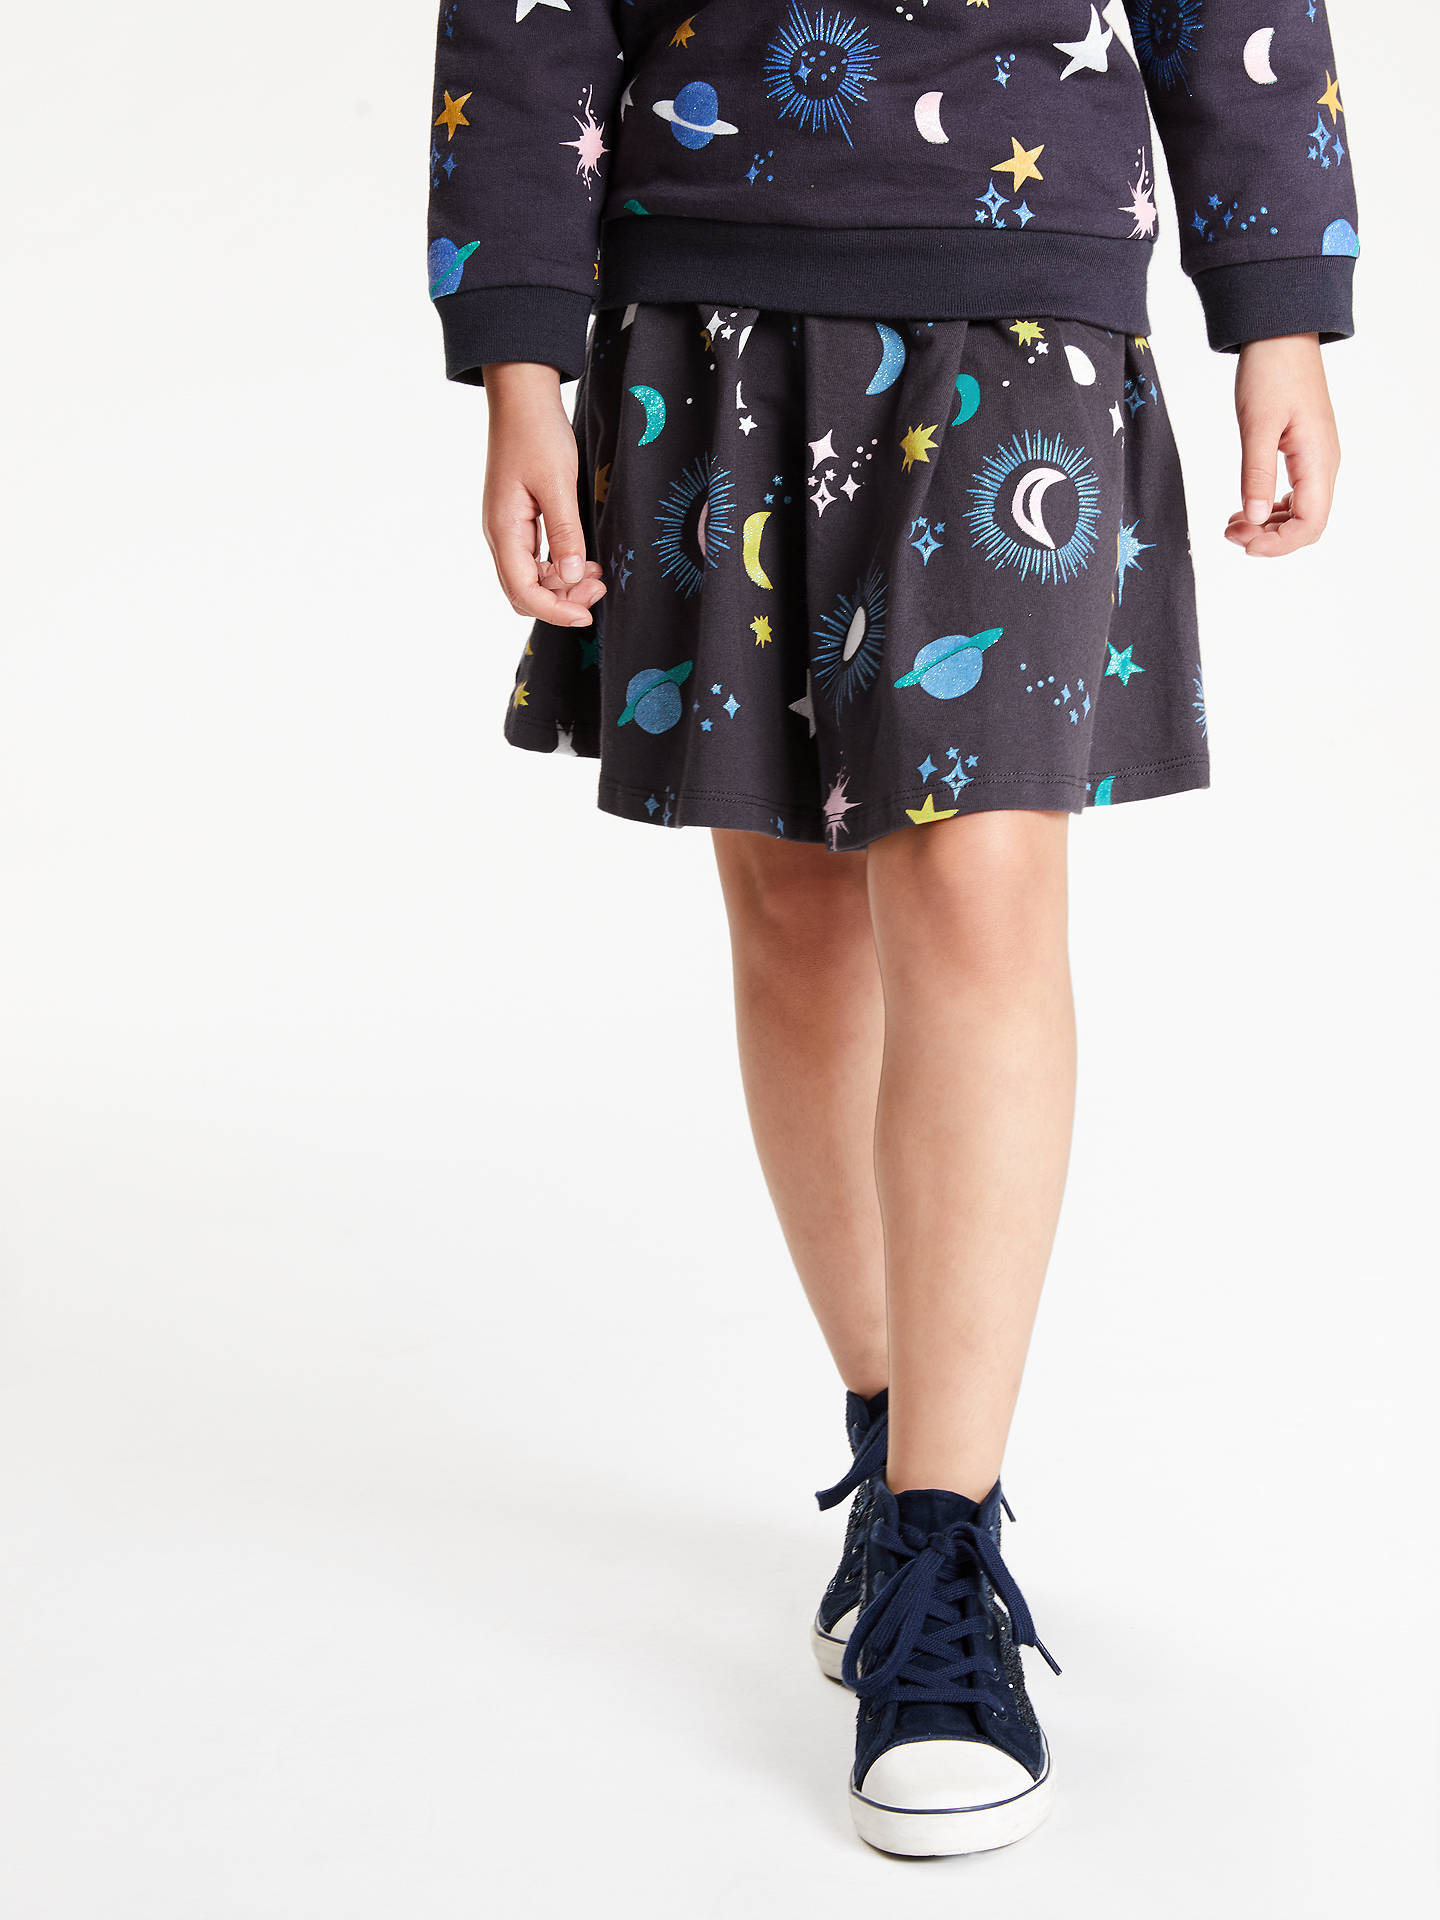 Buy John Lewis & Partners Girls' Star and Moon Jersey Skirt, Charcoal, 2 years Online at johnlewis.com